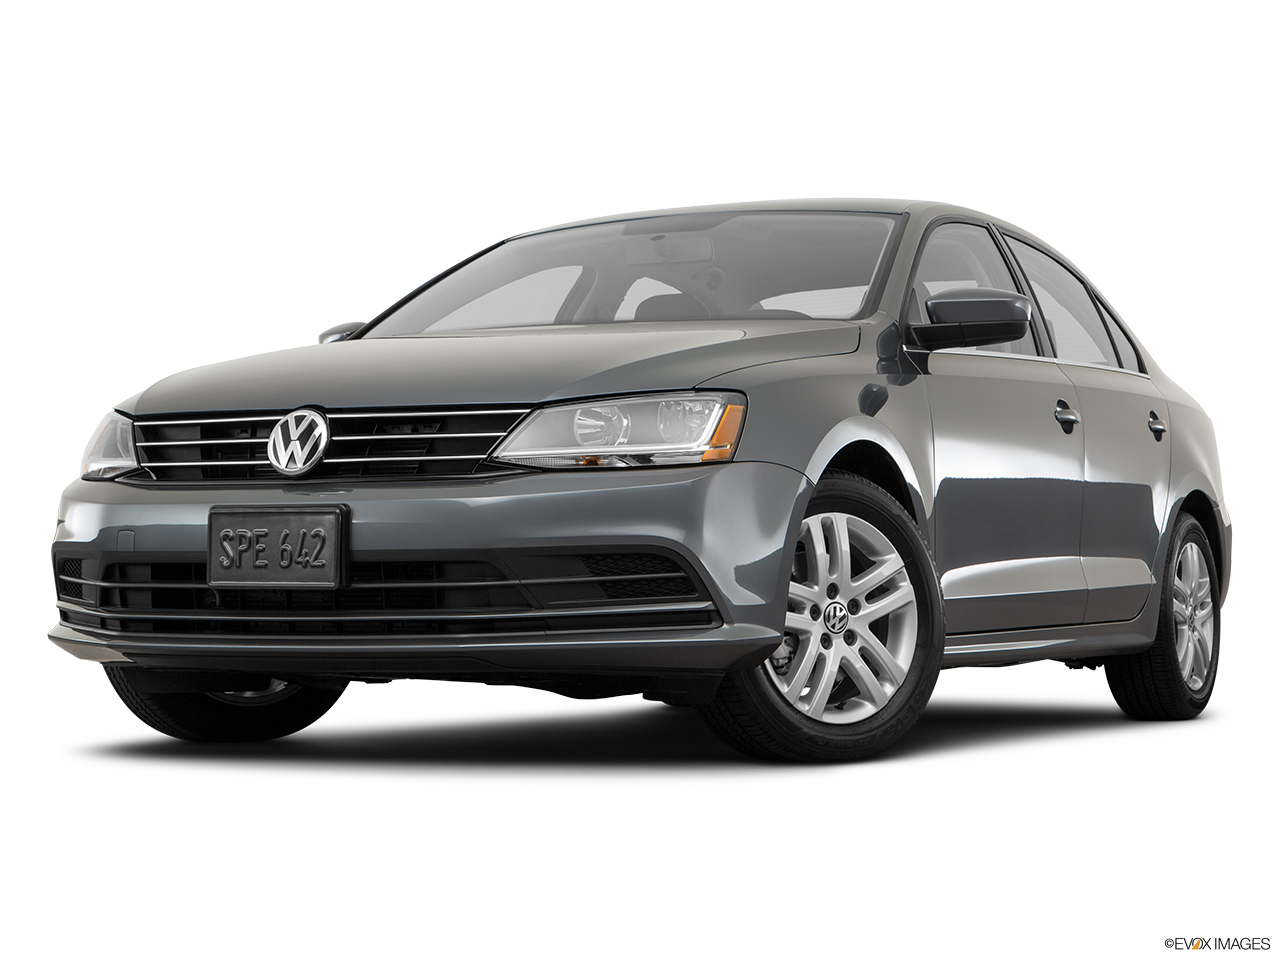 Volkswagen jetta 2017 qatar front angle view low wide perspective